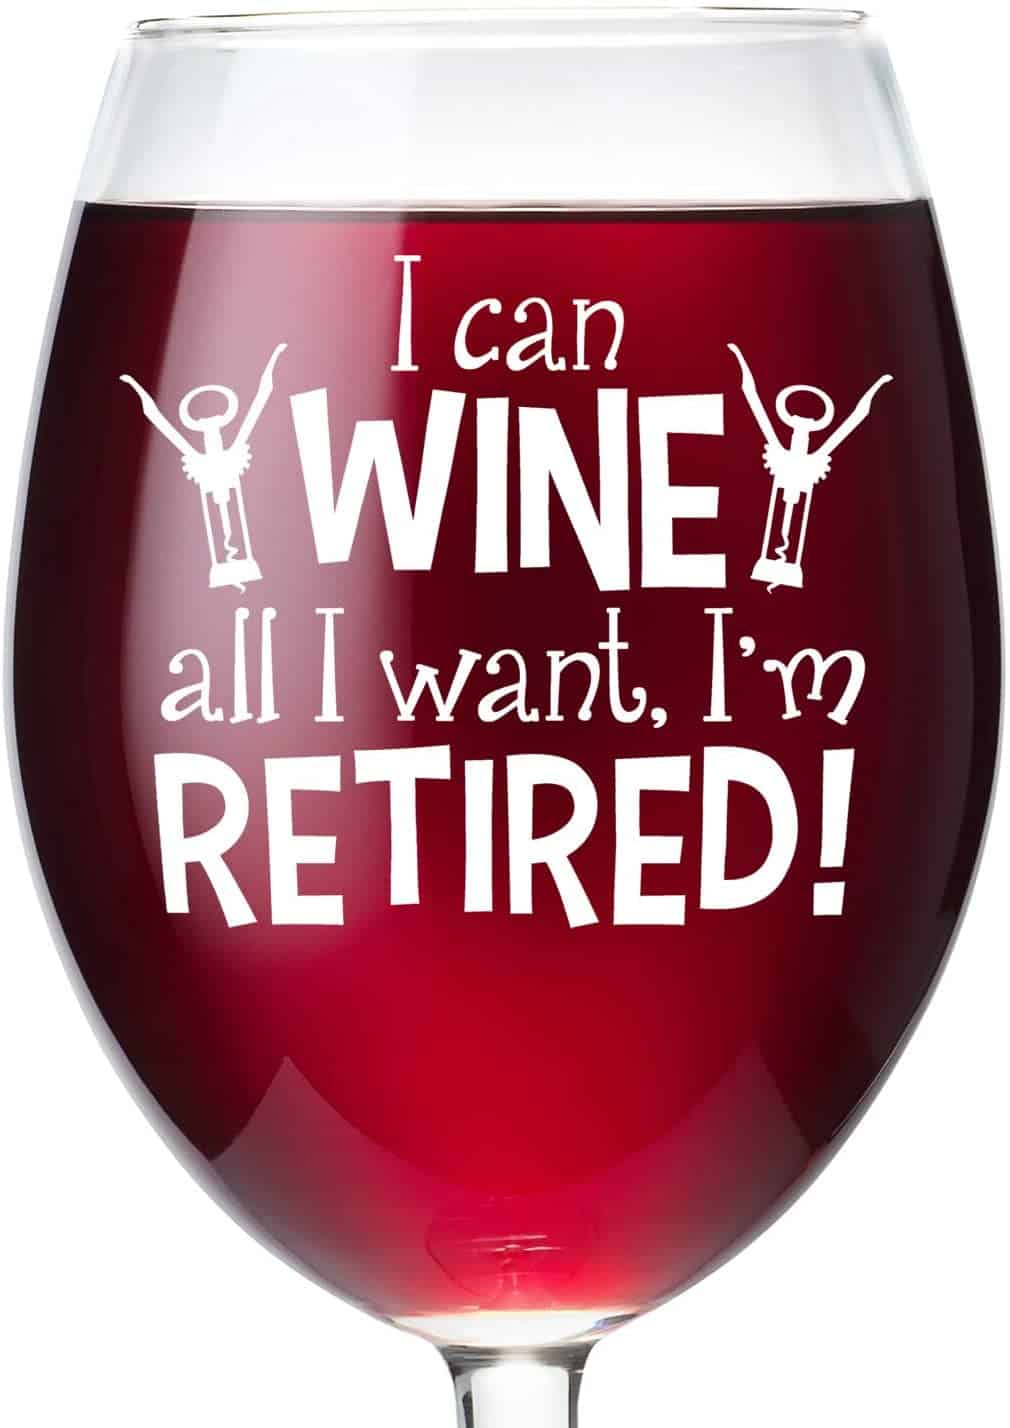 "Retirement Wine Glass with text ""I can wine all I want. I'm retired"" on it - Retirement gifts for men"